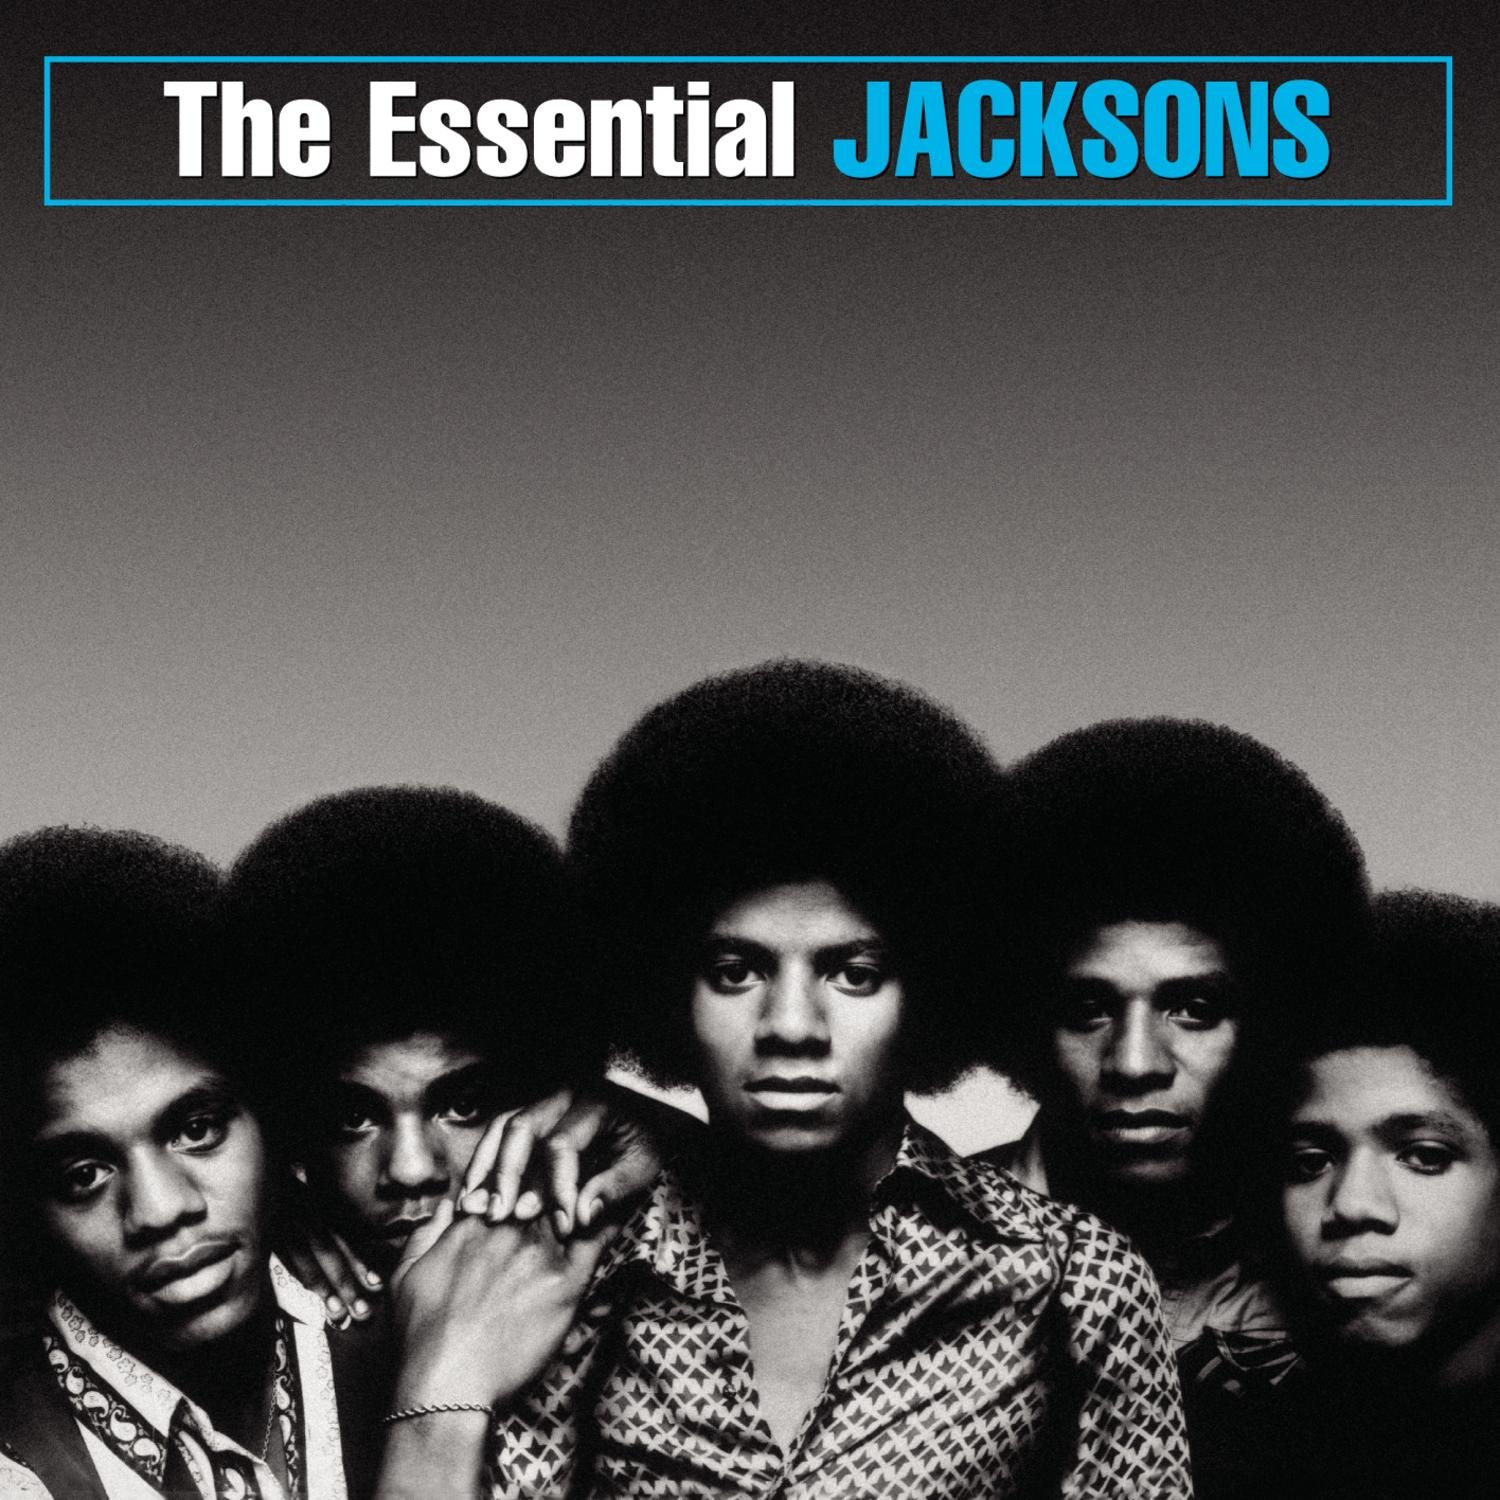 The Essential - Jacksons